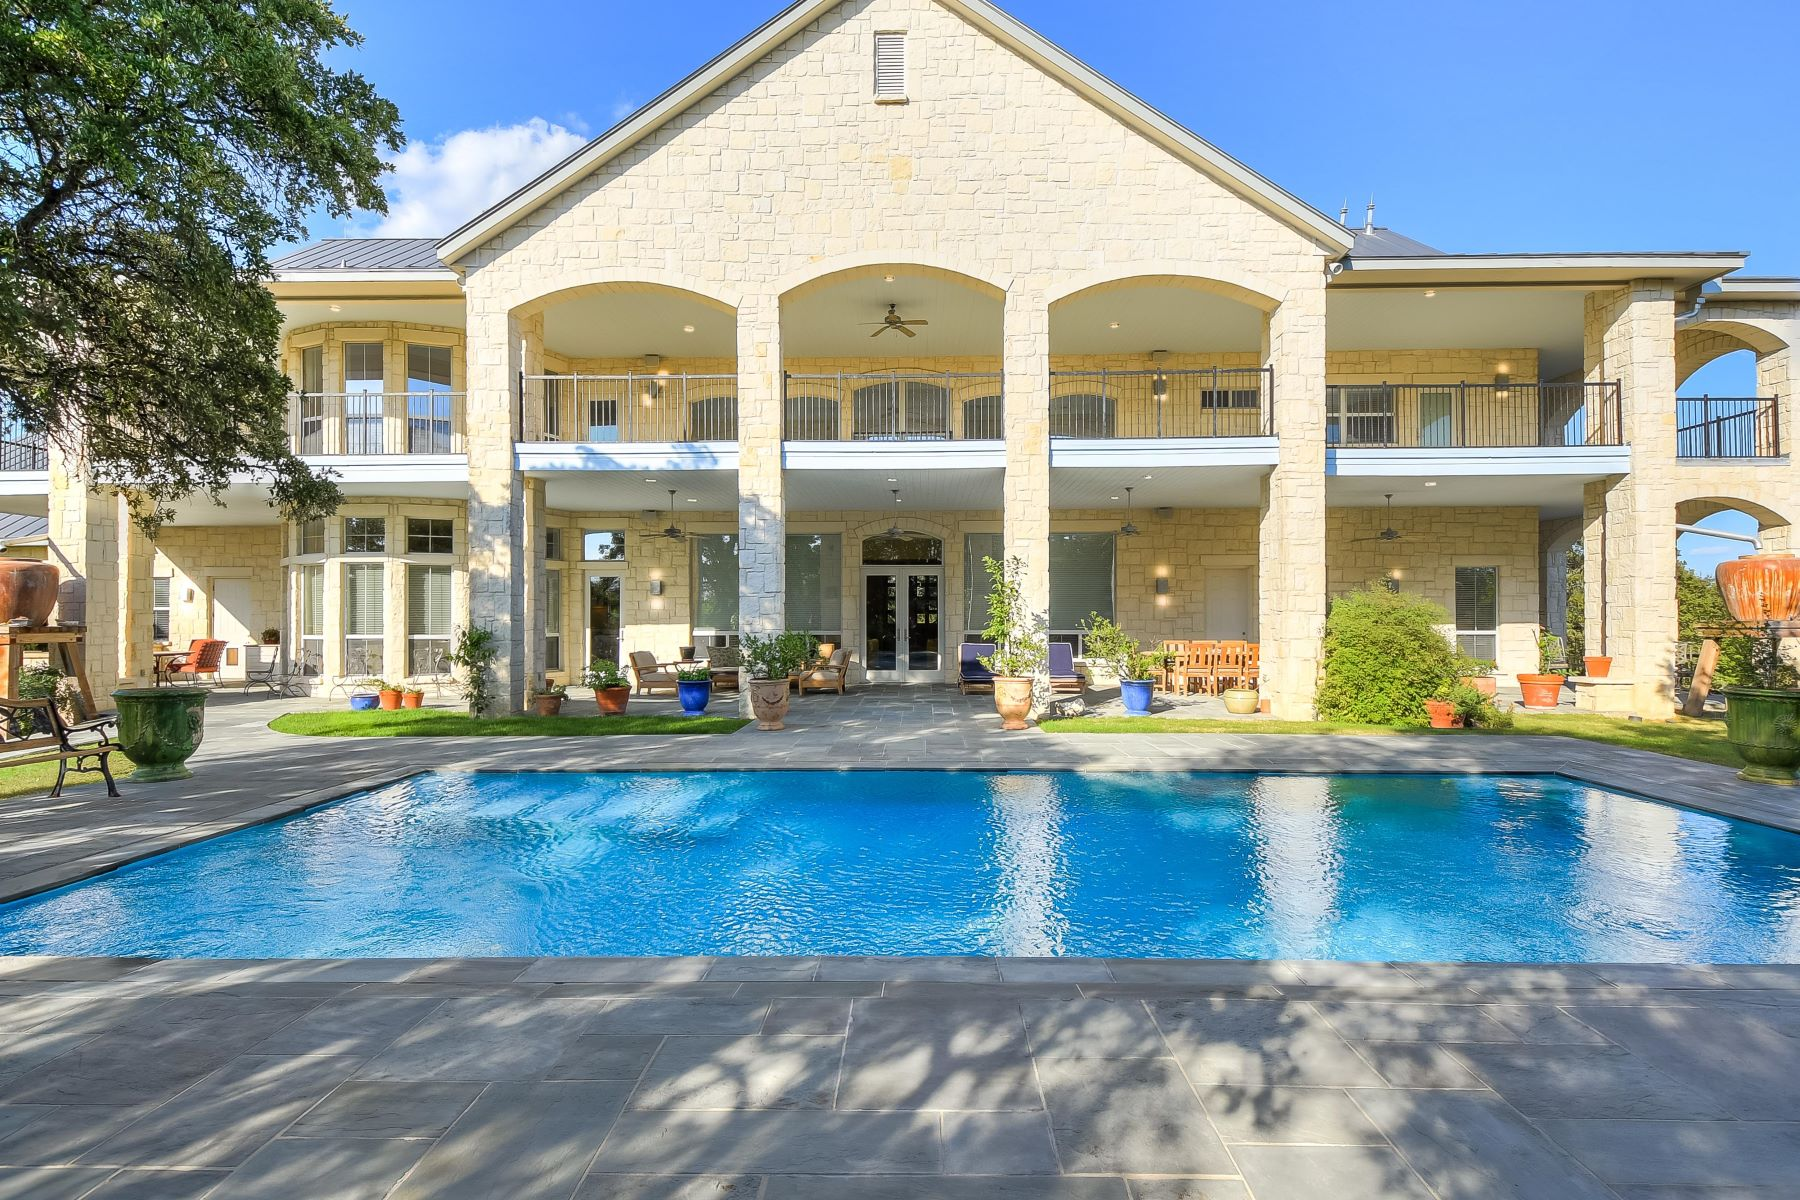 Single Family Homes for Active at Luxurious Dominion Estate Offering Panoramic Views 41 Vineyard Drive San Antonio, Texas 78257 United States